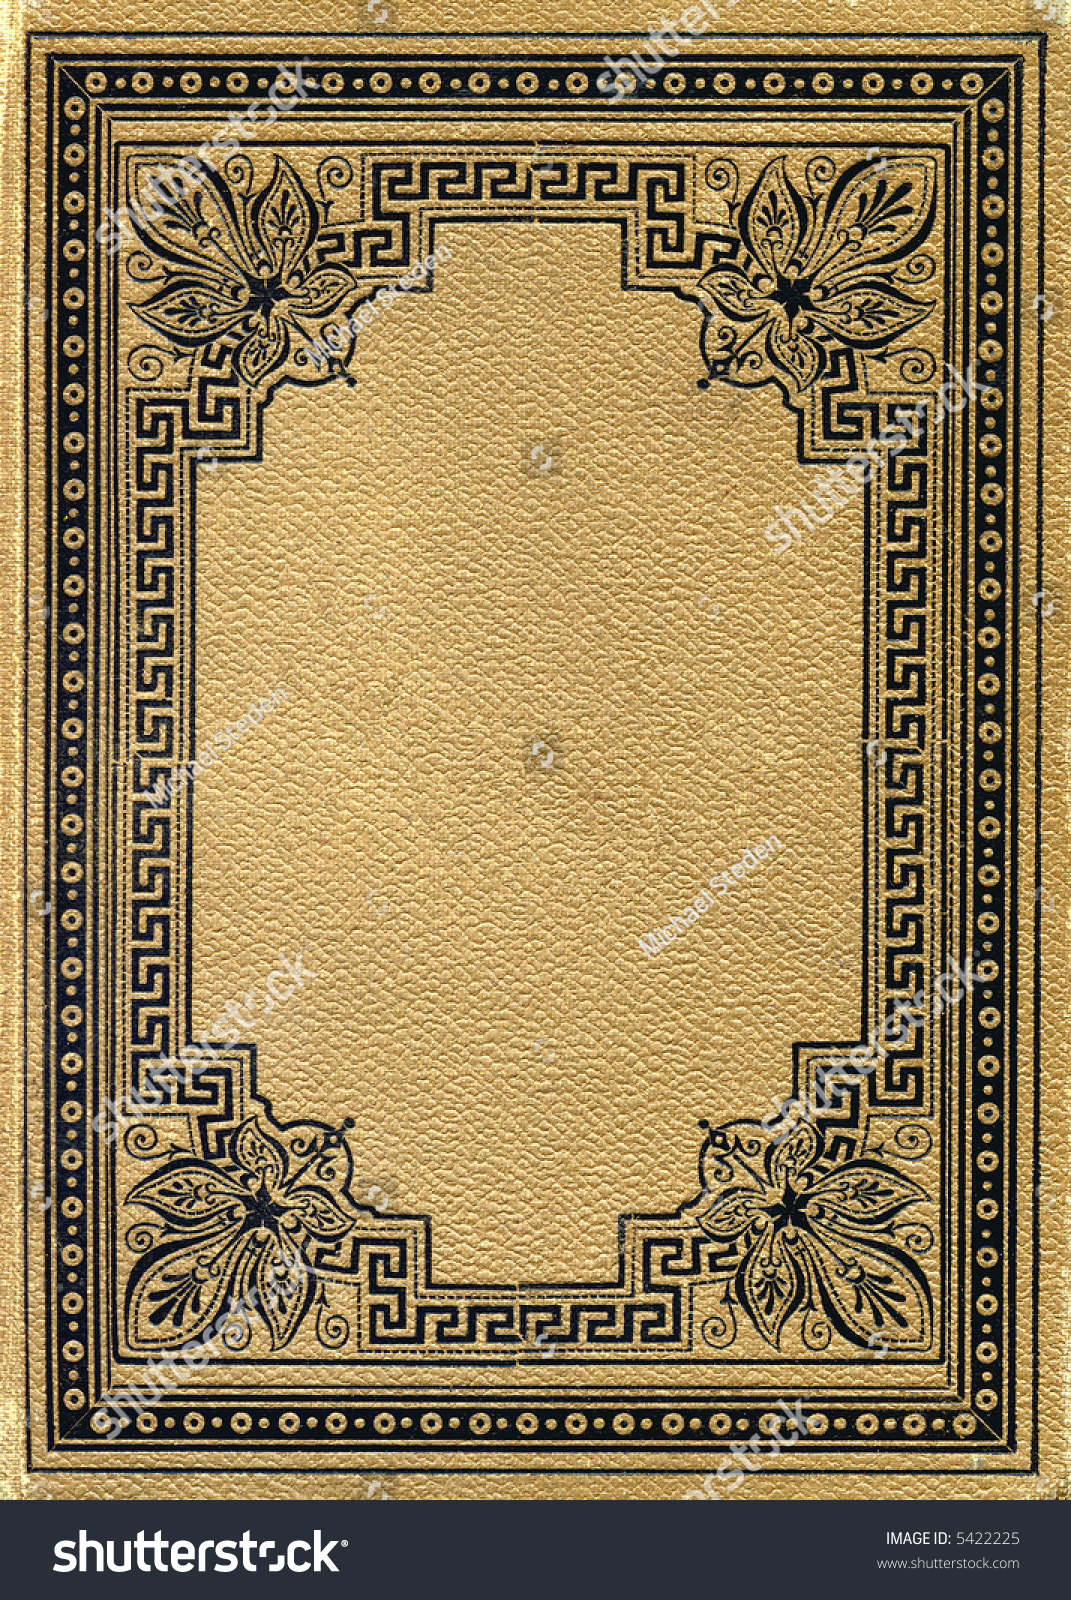 Vintage Book Cover Border : Ancient book cover front stock photo  shutterstock